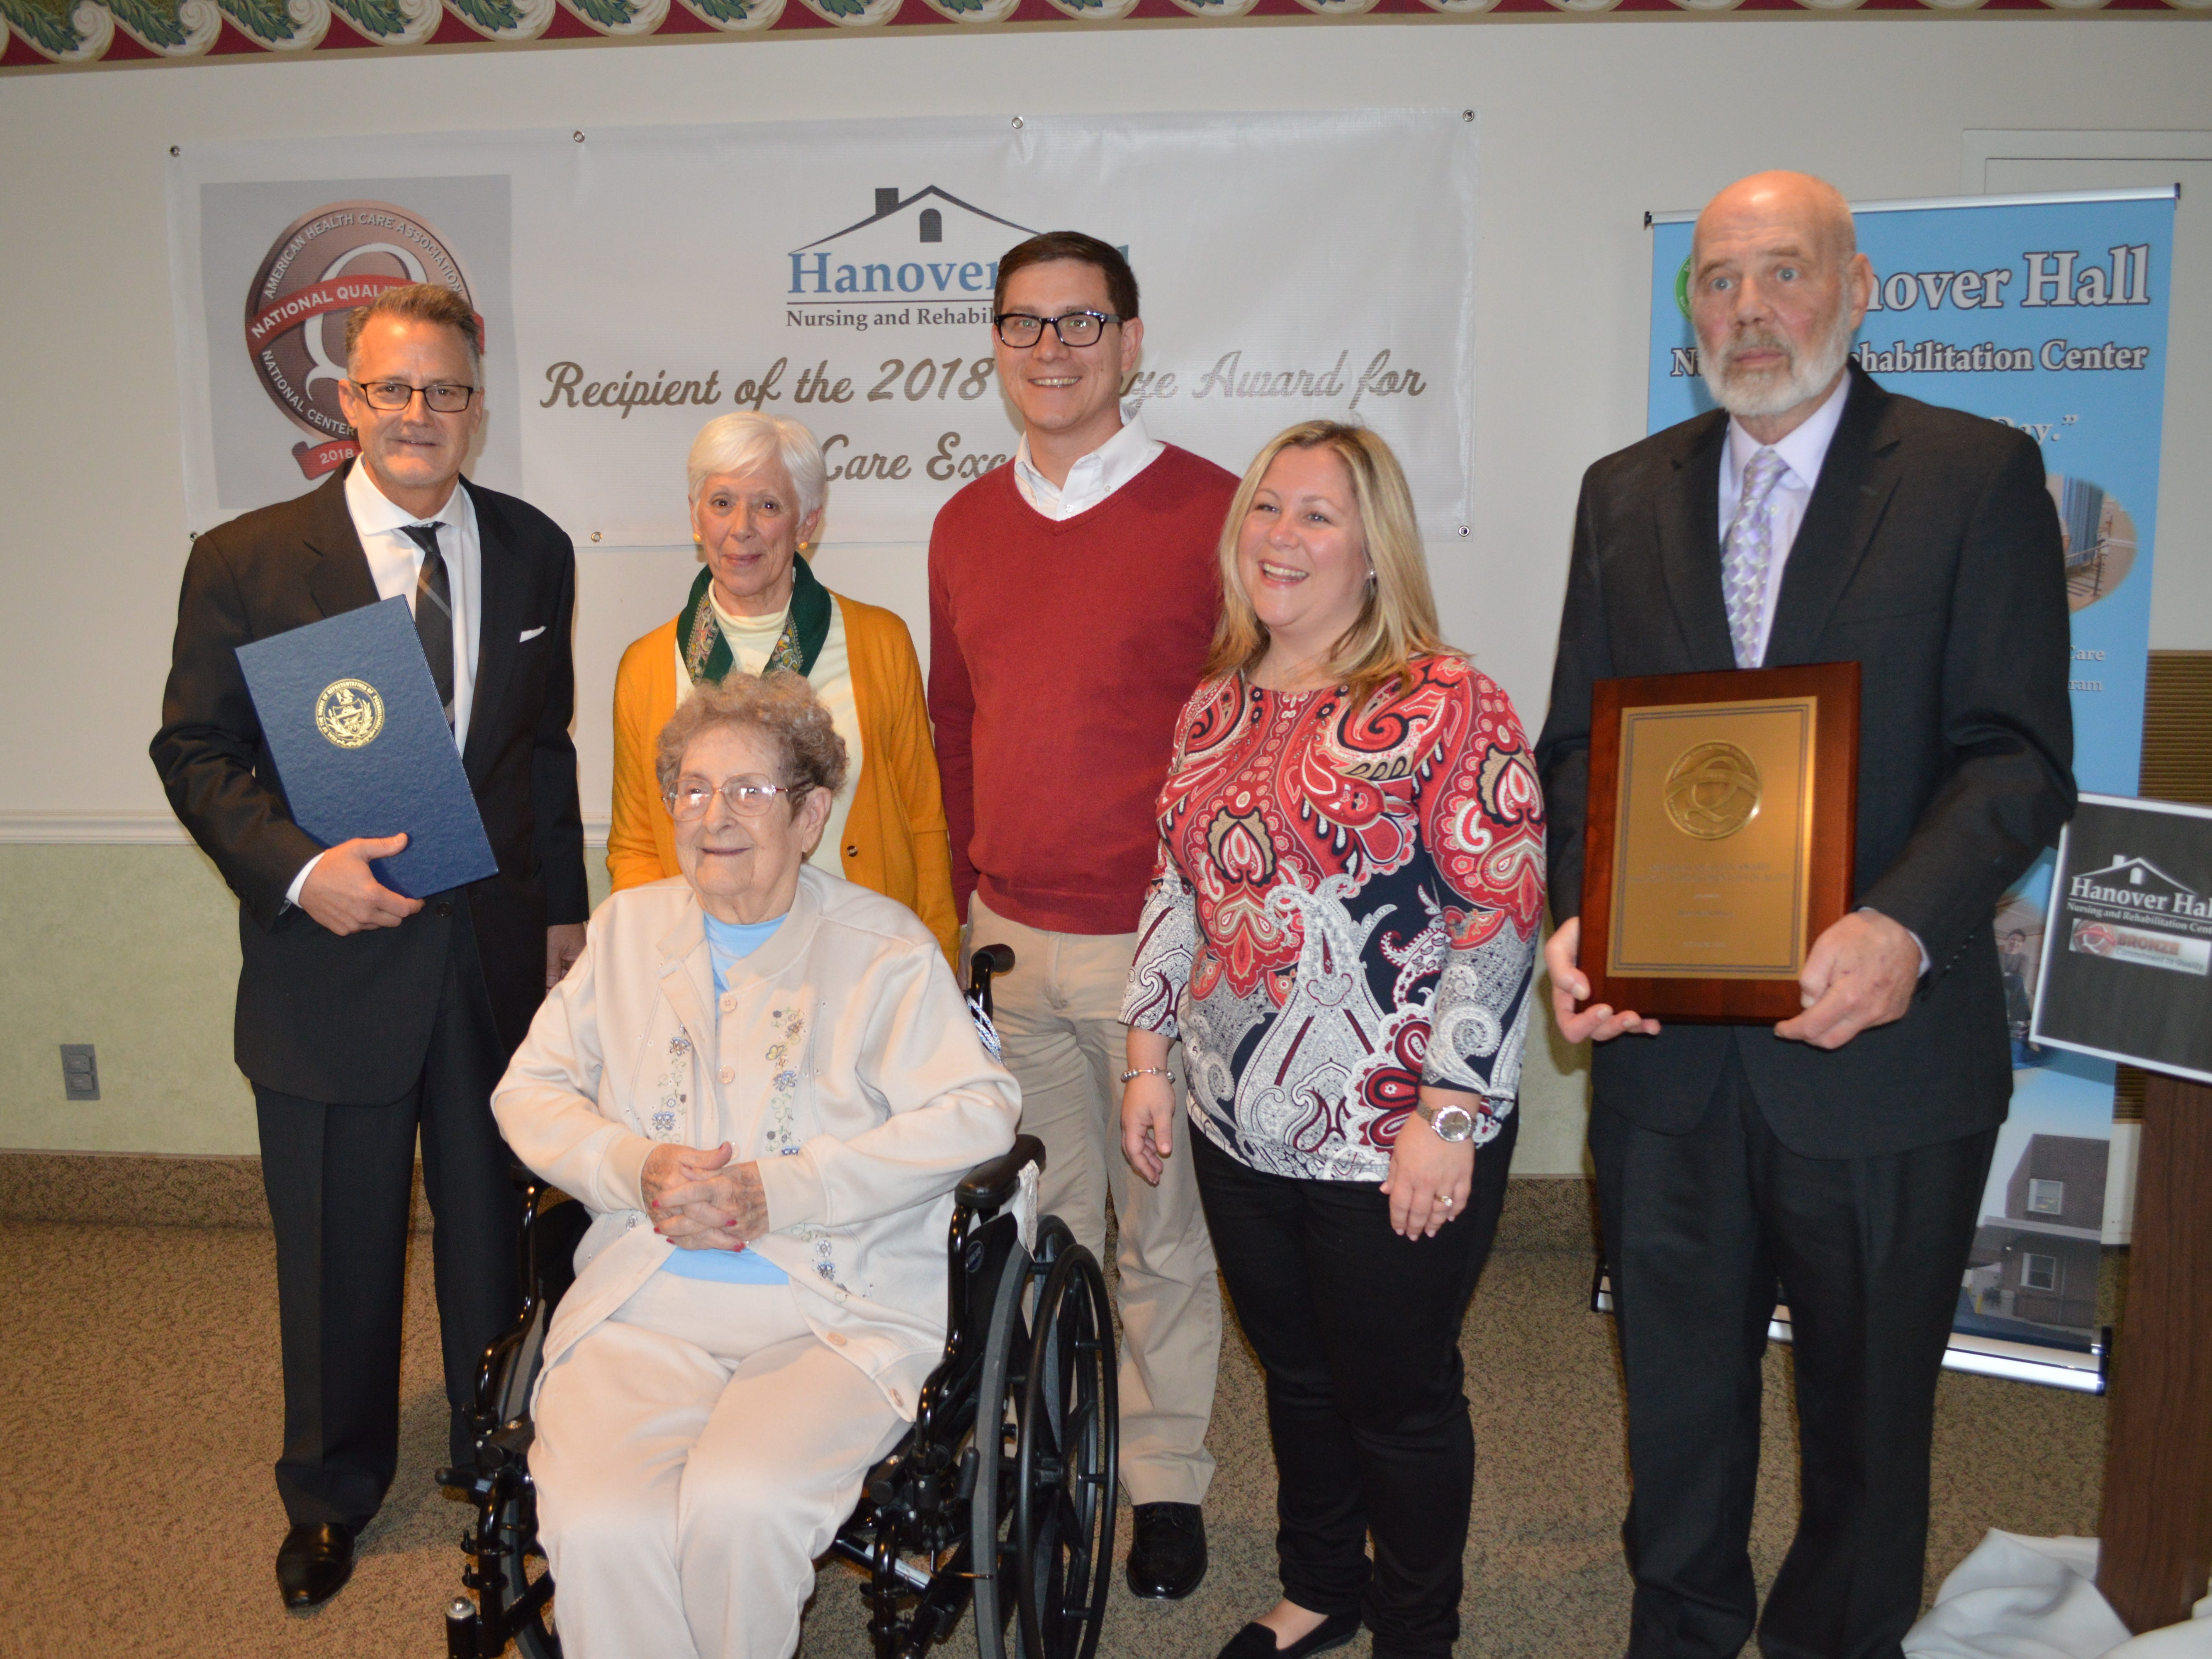 Hanover Hall Nursing and Rehabilitation Center in Hanover, Pa., was honored as a 2018 Bronze Achievement in Quality Award recipient by the American Health Care Association and National Center for Assisted Living (AHCA/NCAL). From L to R: Daniel Pyle Administrator, Hanover Hall; Barb Metzler, on behalf of Sen. Rich Alloway; Resident, Pat Wentz; Rep.Torren Ecker; Rep. Kate Klunk; Tom Sugars, Vice President of Human Resources, WILMAC Corporation. submitted